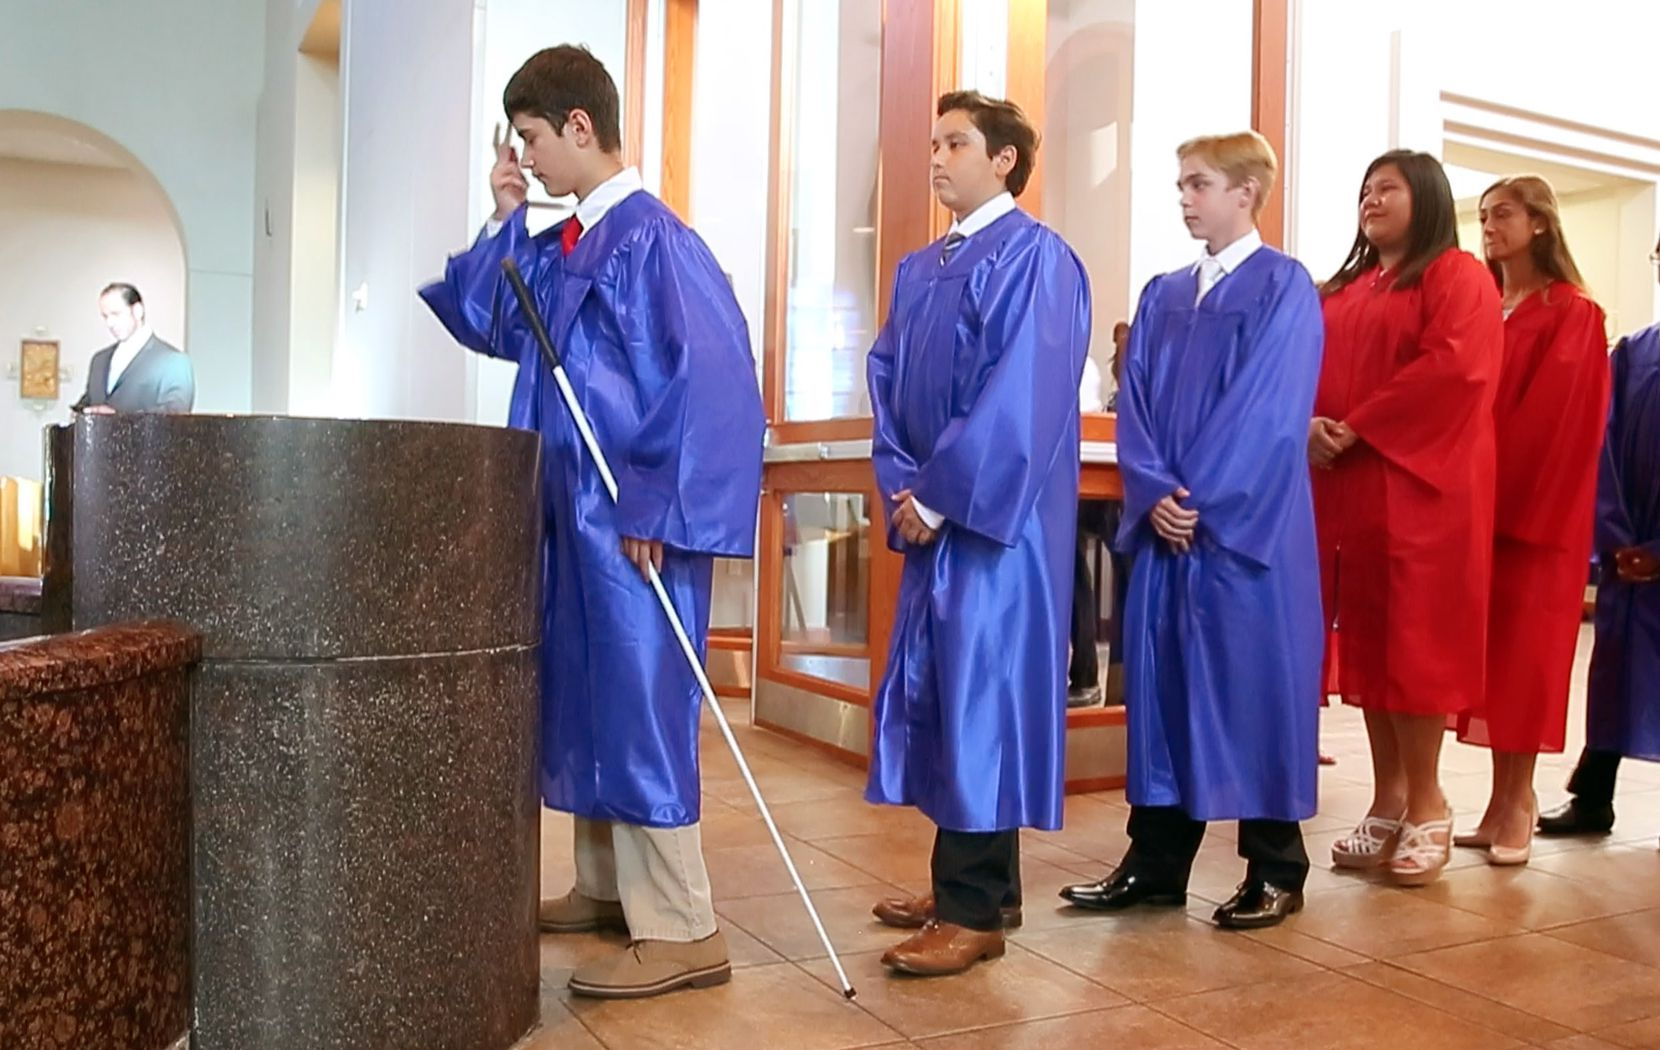 Zach makes the sign of the cross after taking holy water as he enters Mary Immaculate Catholic Church for his eighth-grade graduation.